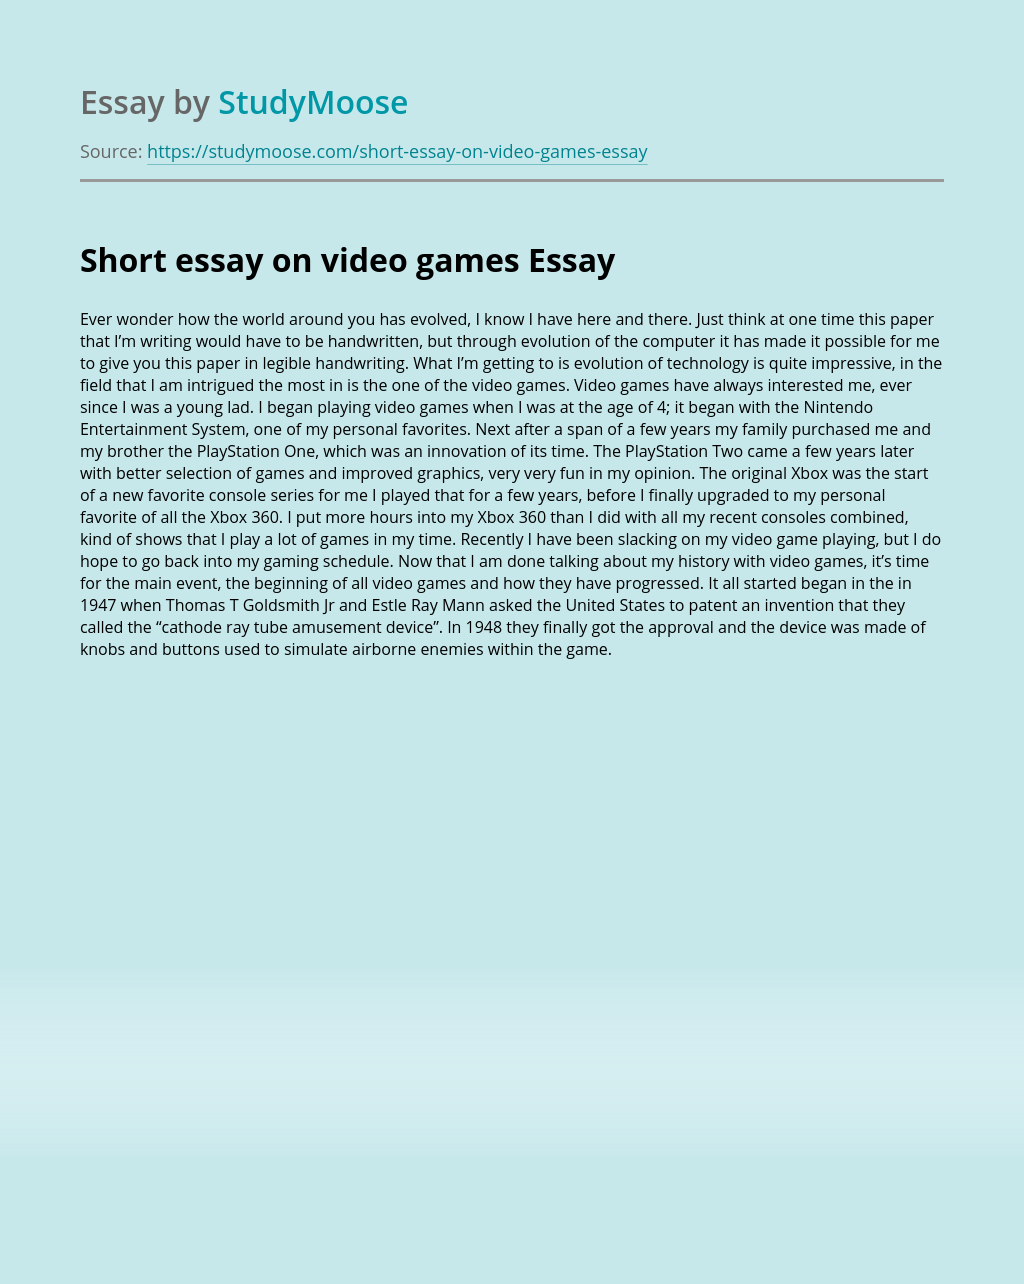 Short essay on video games